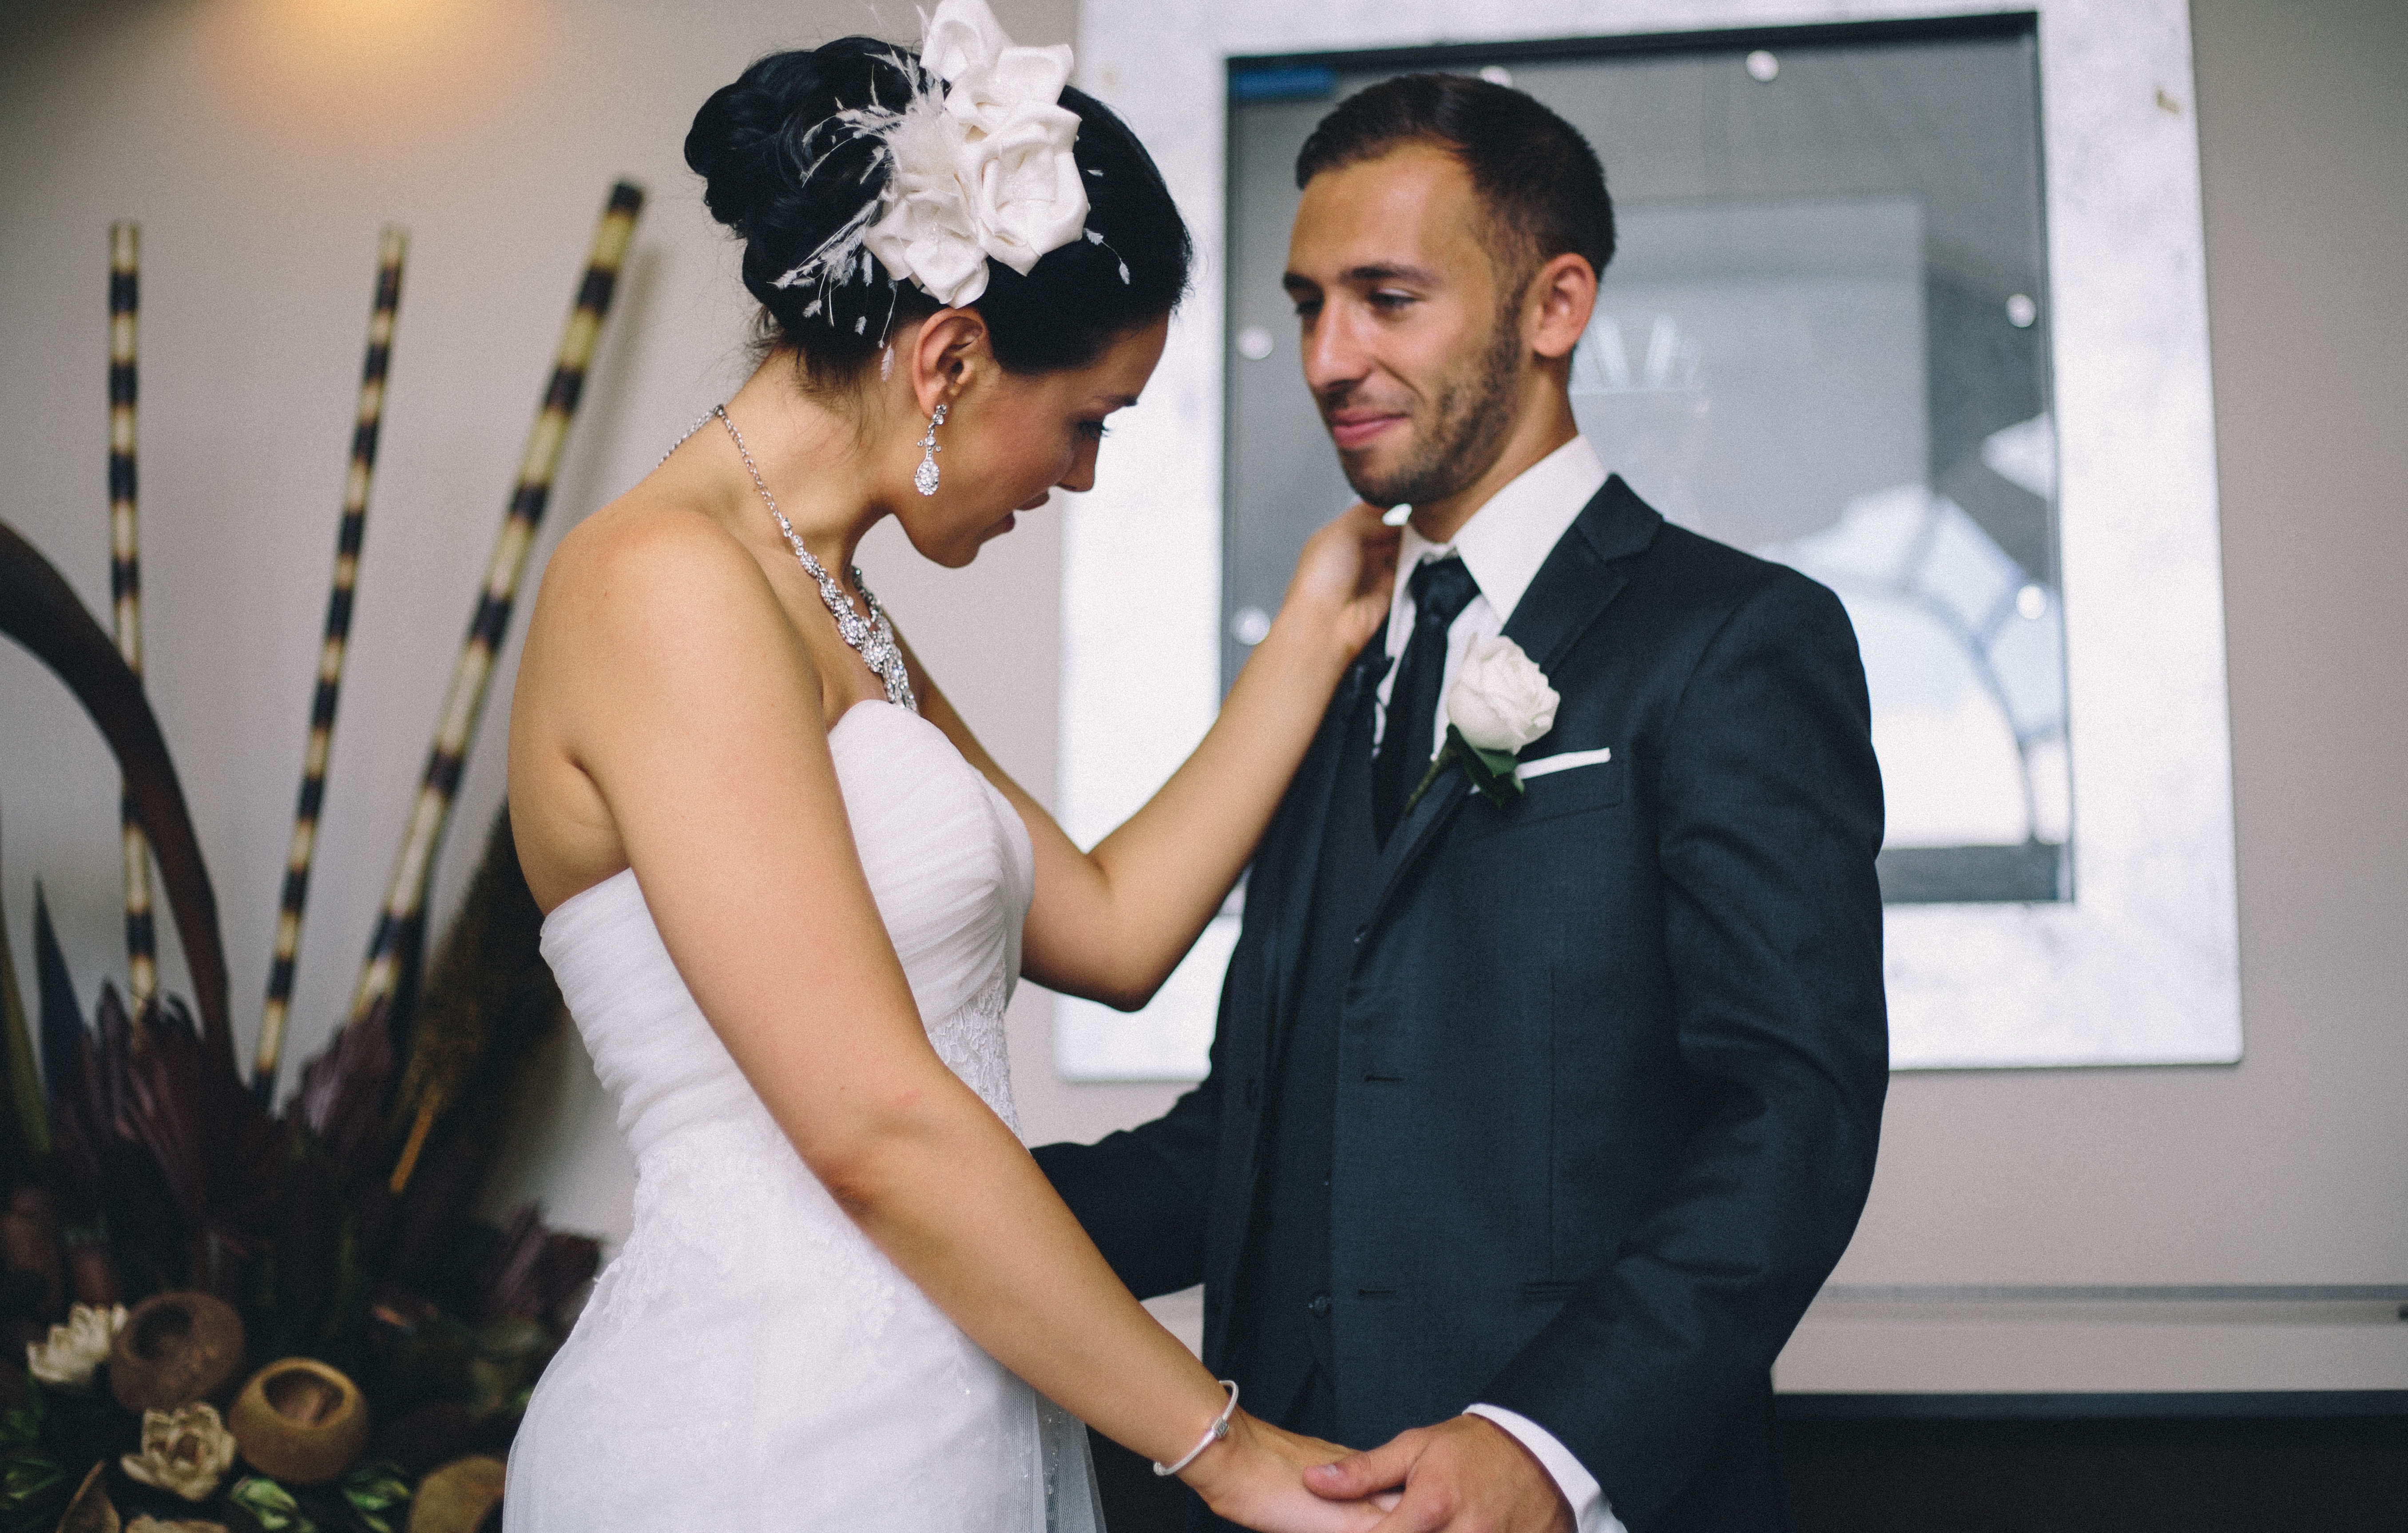 Jewish Groom tears up at his first sight of his bride wearing a sweetheart neckline wedding gown with statement diamond necklace and feathered hair piece at their First Look